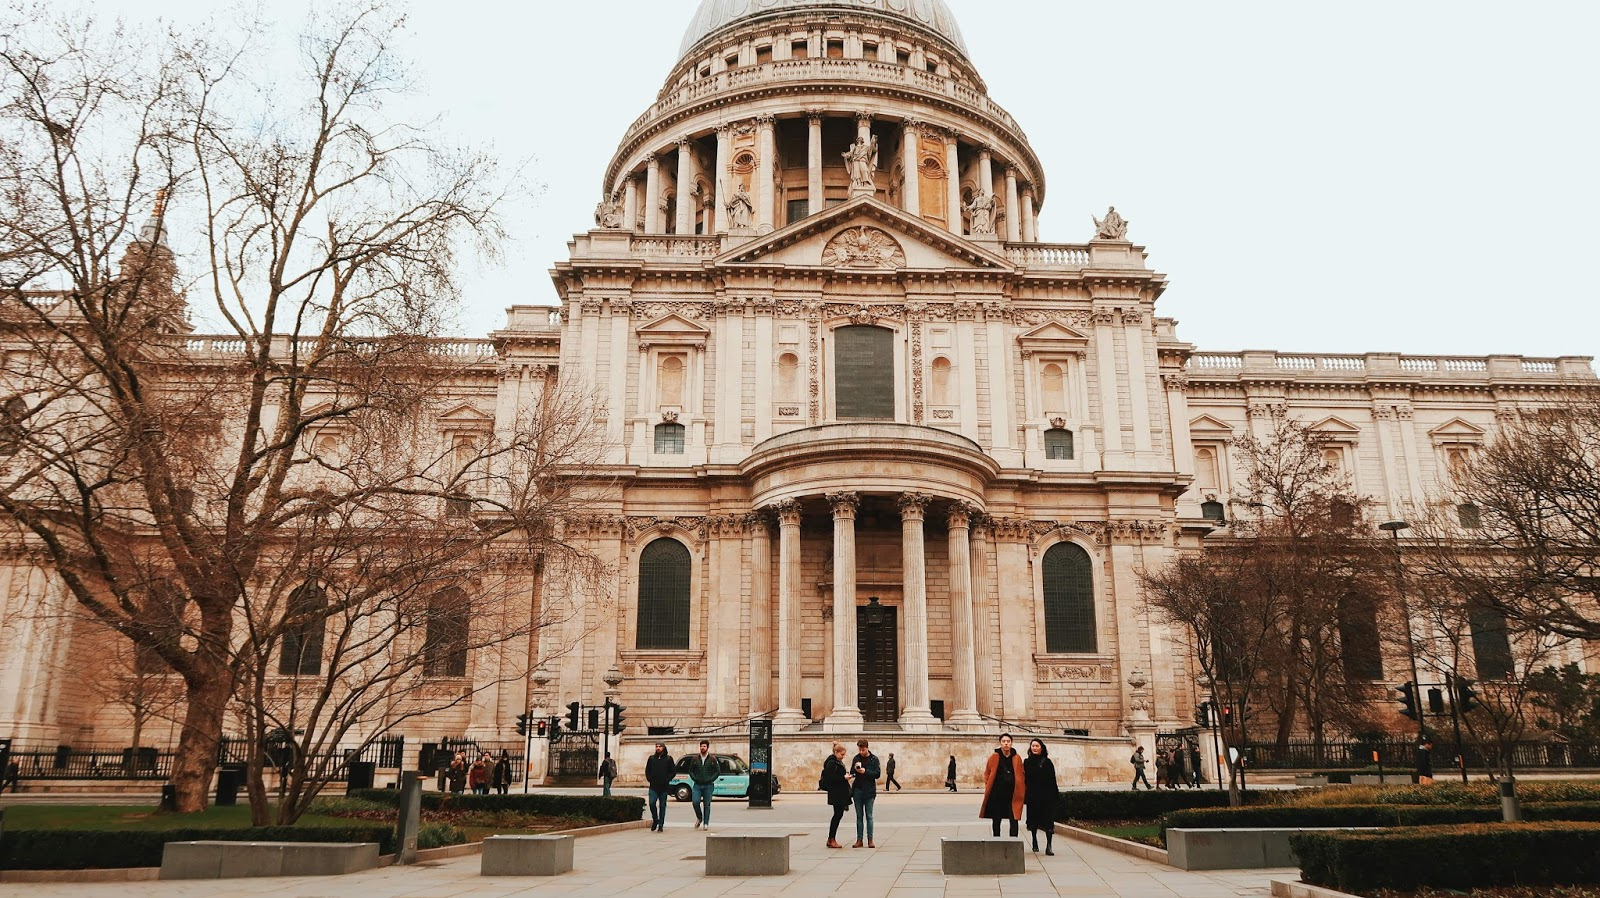 st-pauls-cathedral-londres